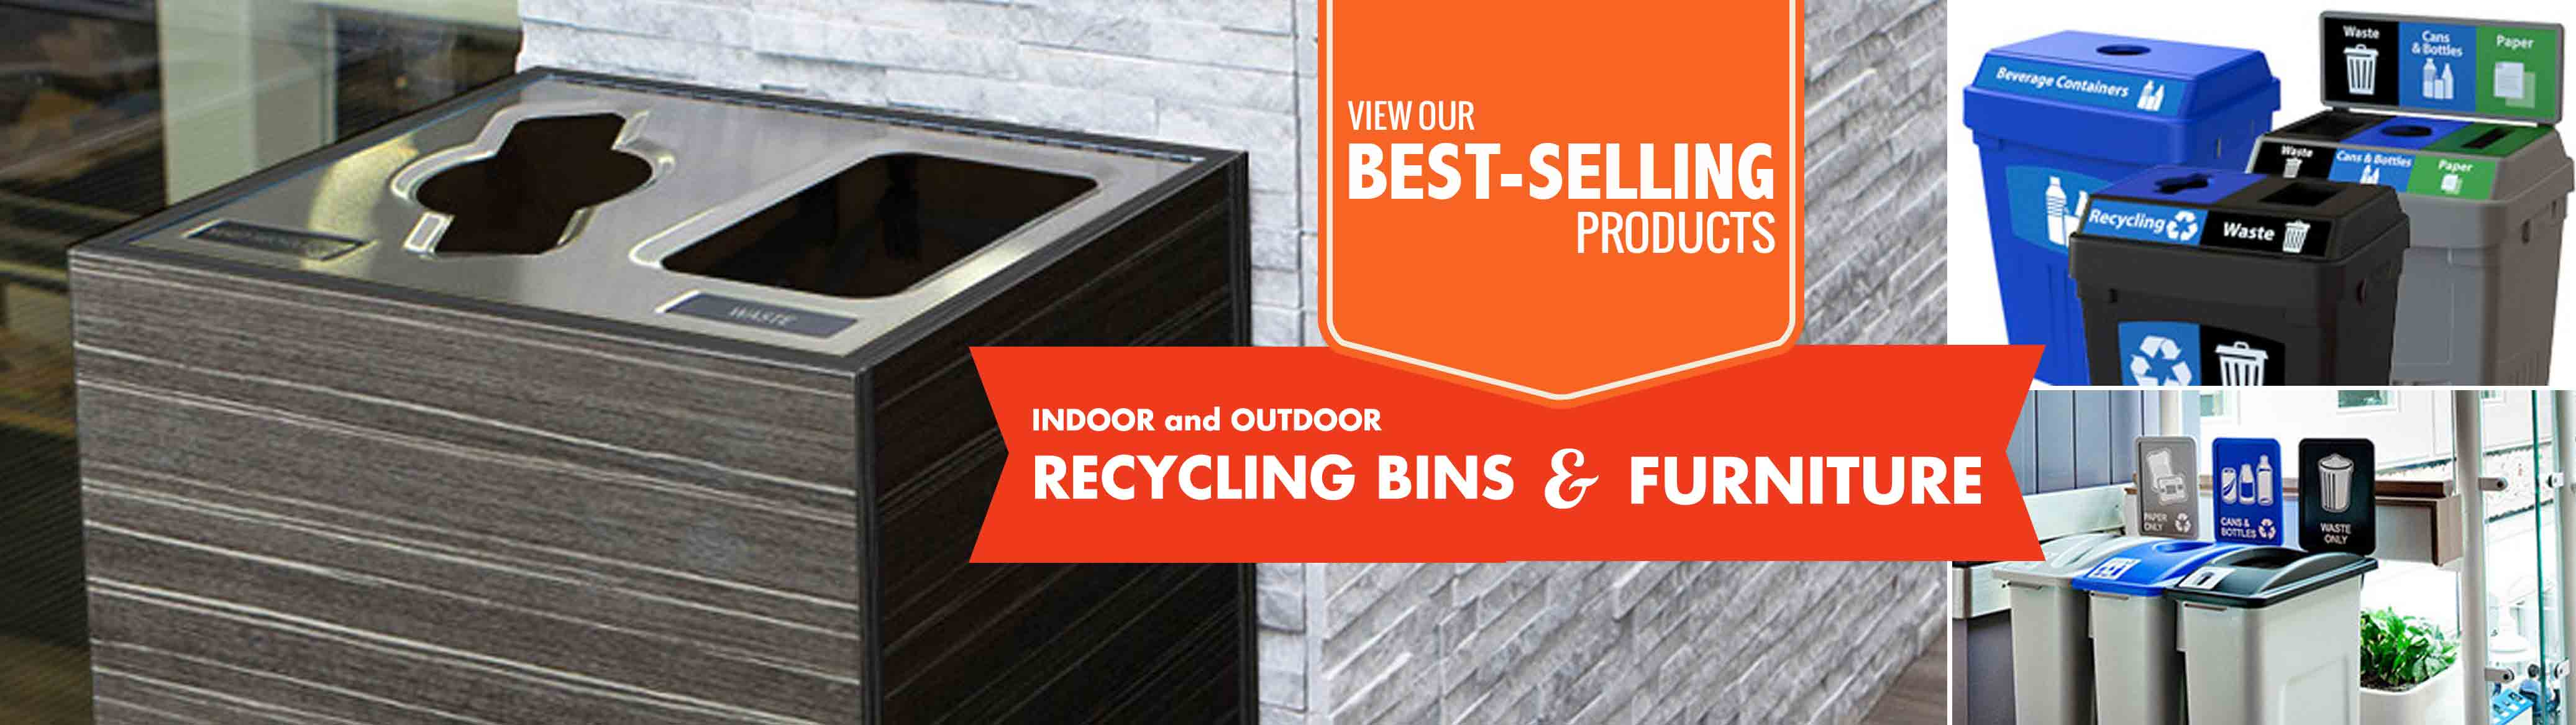 View Our Best Selling Indoor and Outdoor Recycling Bins & Furniture